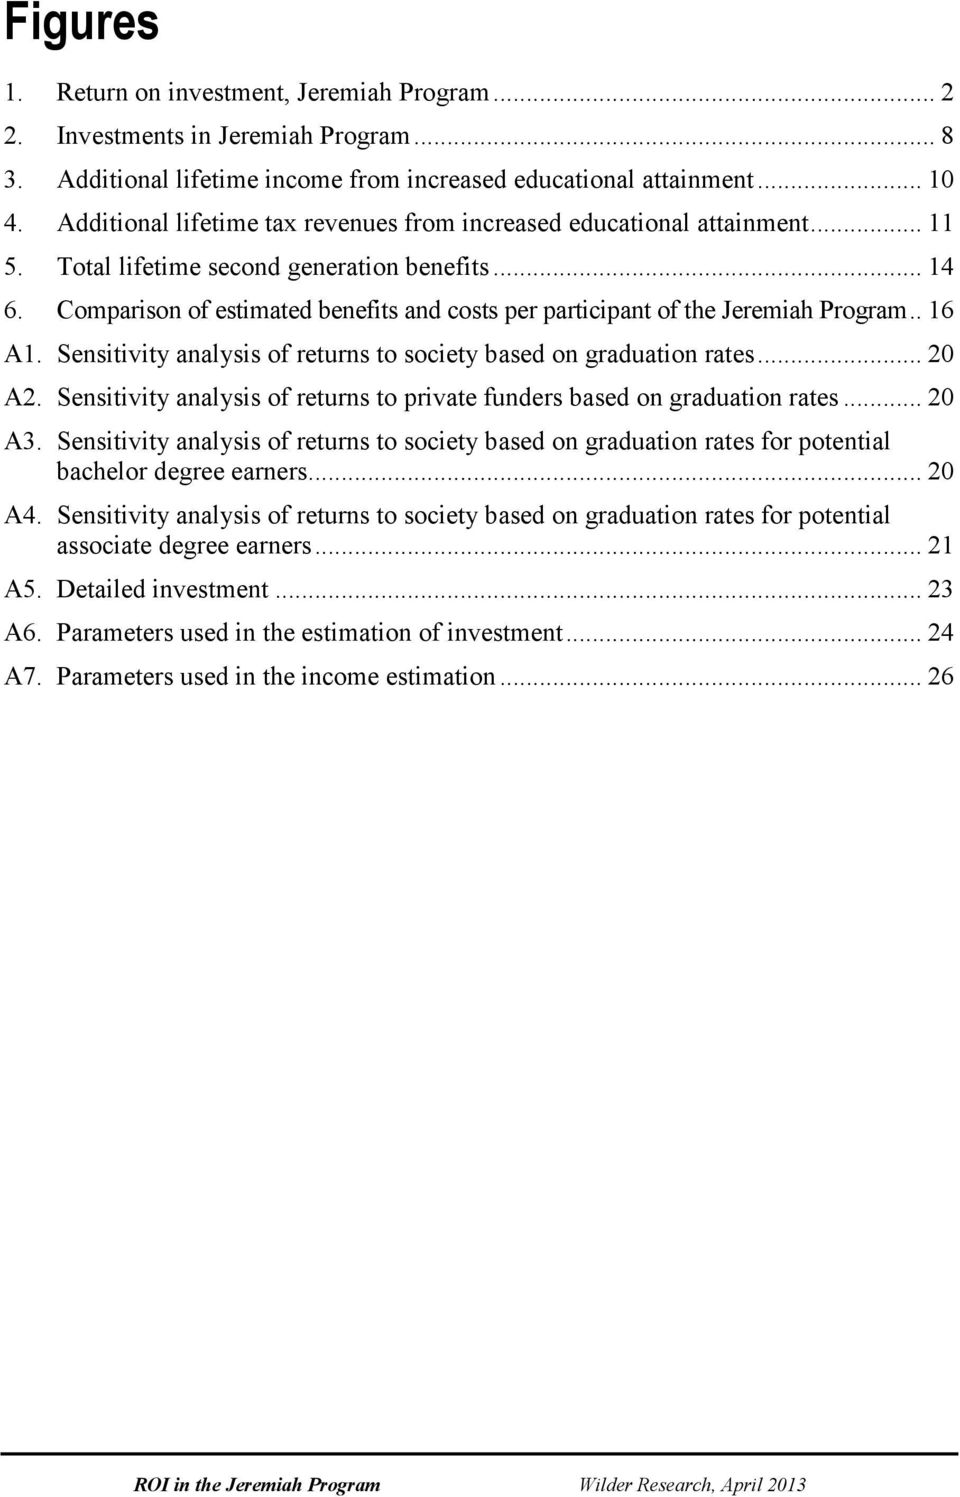 Comparison of estimated benefits and costs per participant of the Jeremiah Program.. 16 A1. Sensitivity analysis of returns to society based on graduation rates... 20 A2.